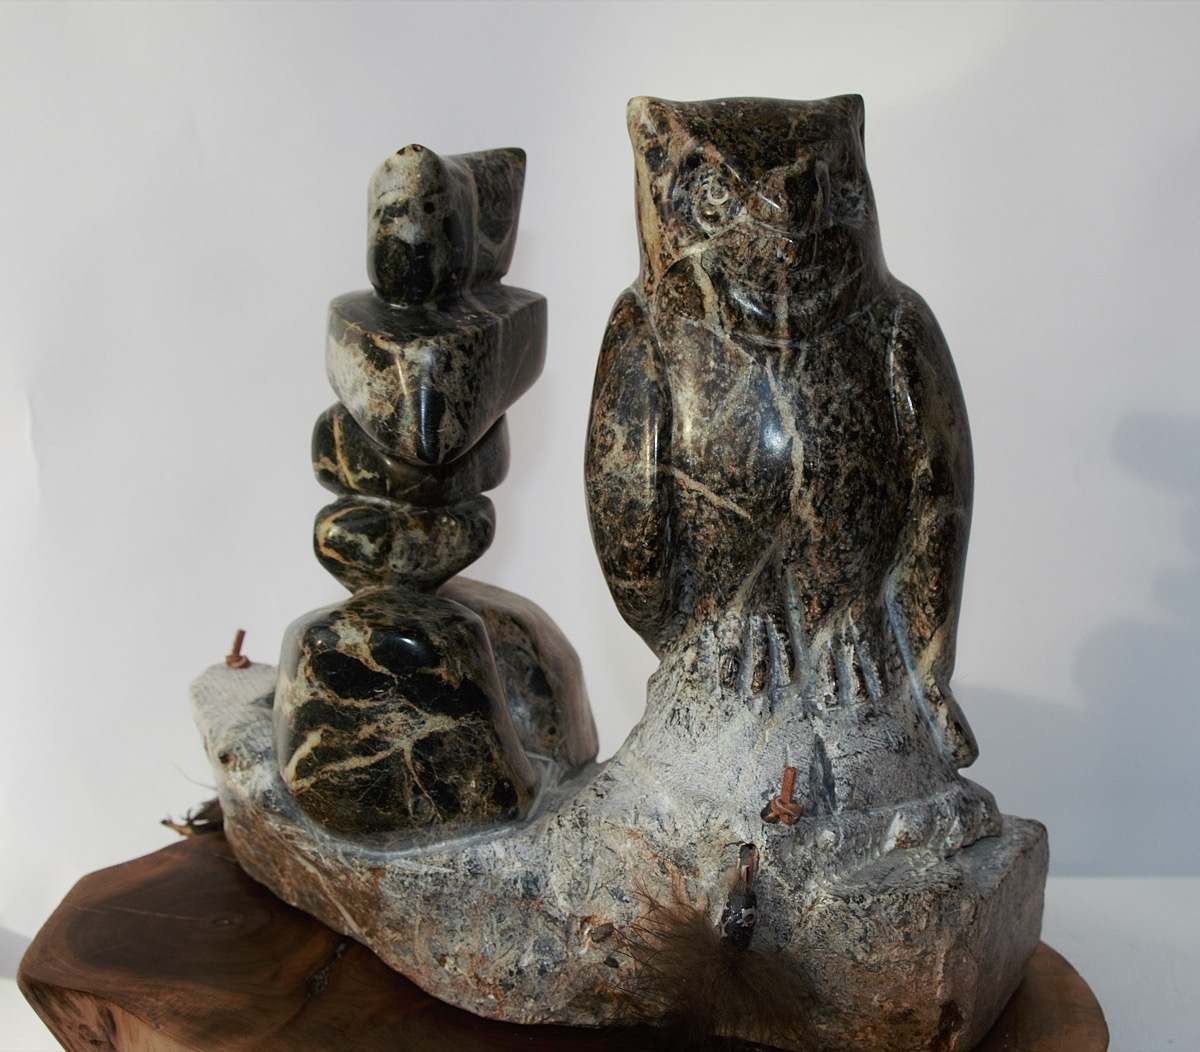 The sentinels arctic stone carving